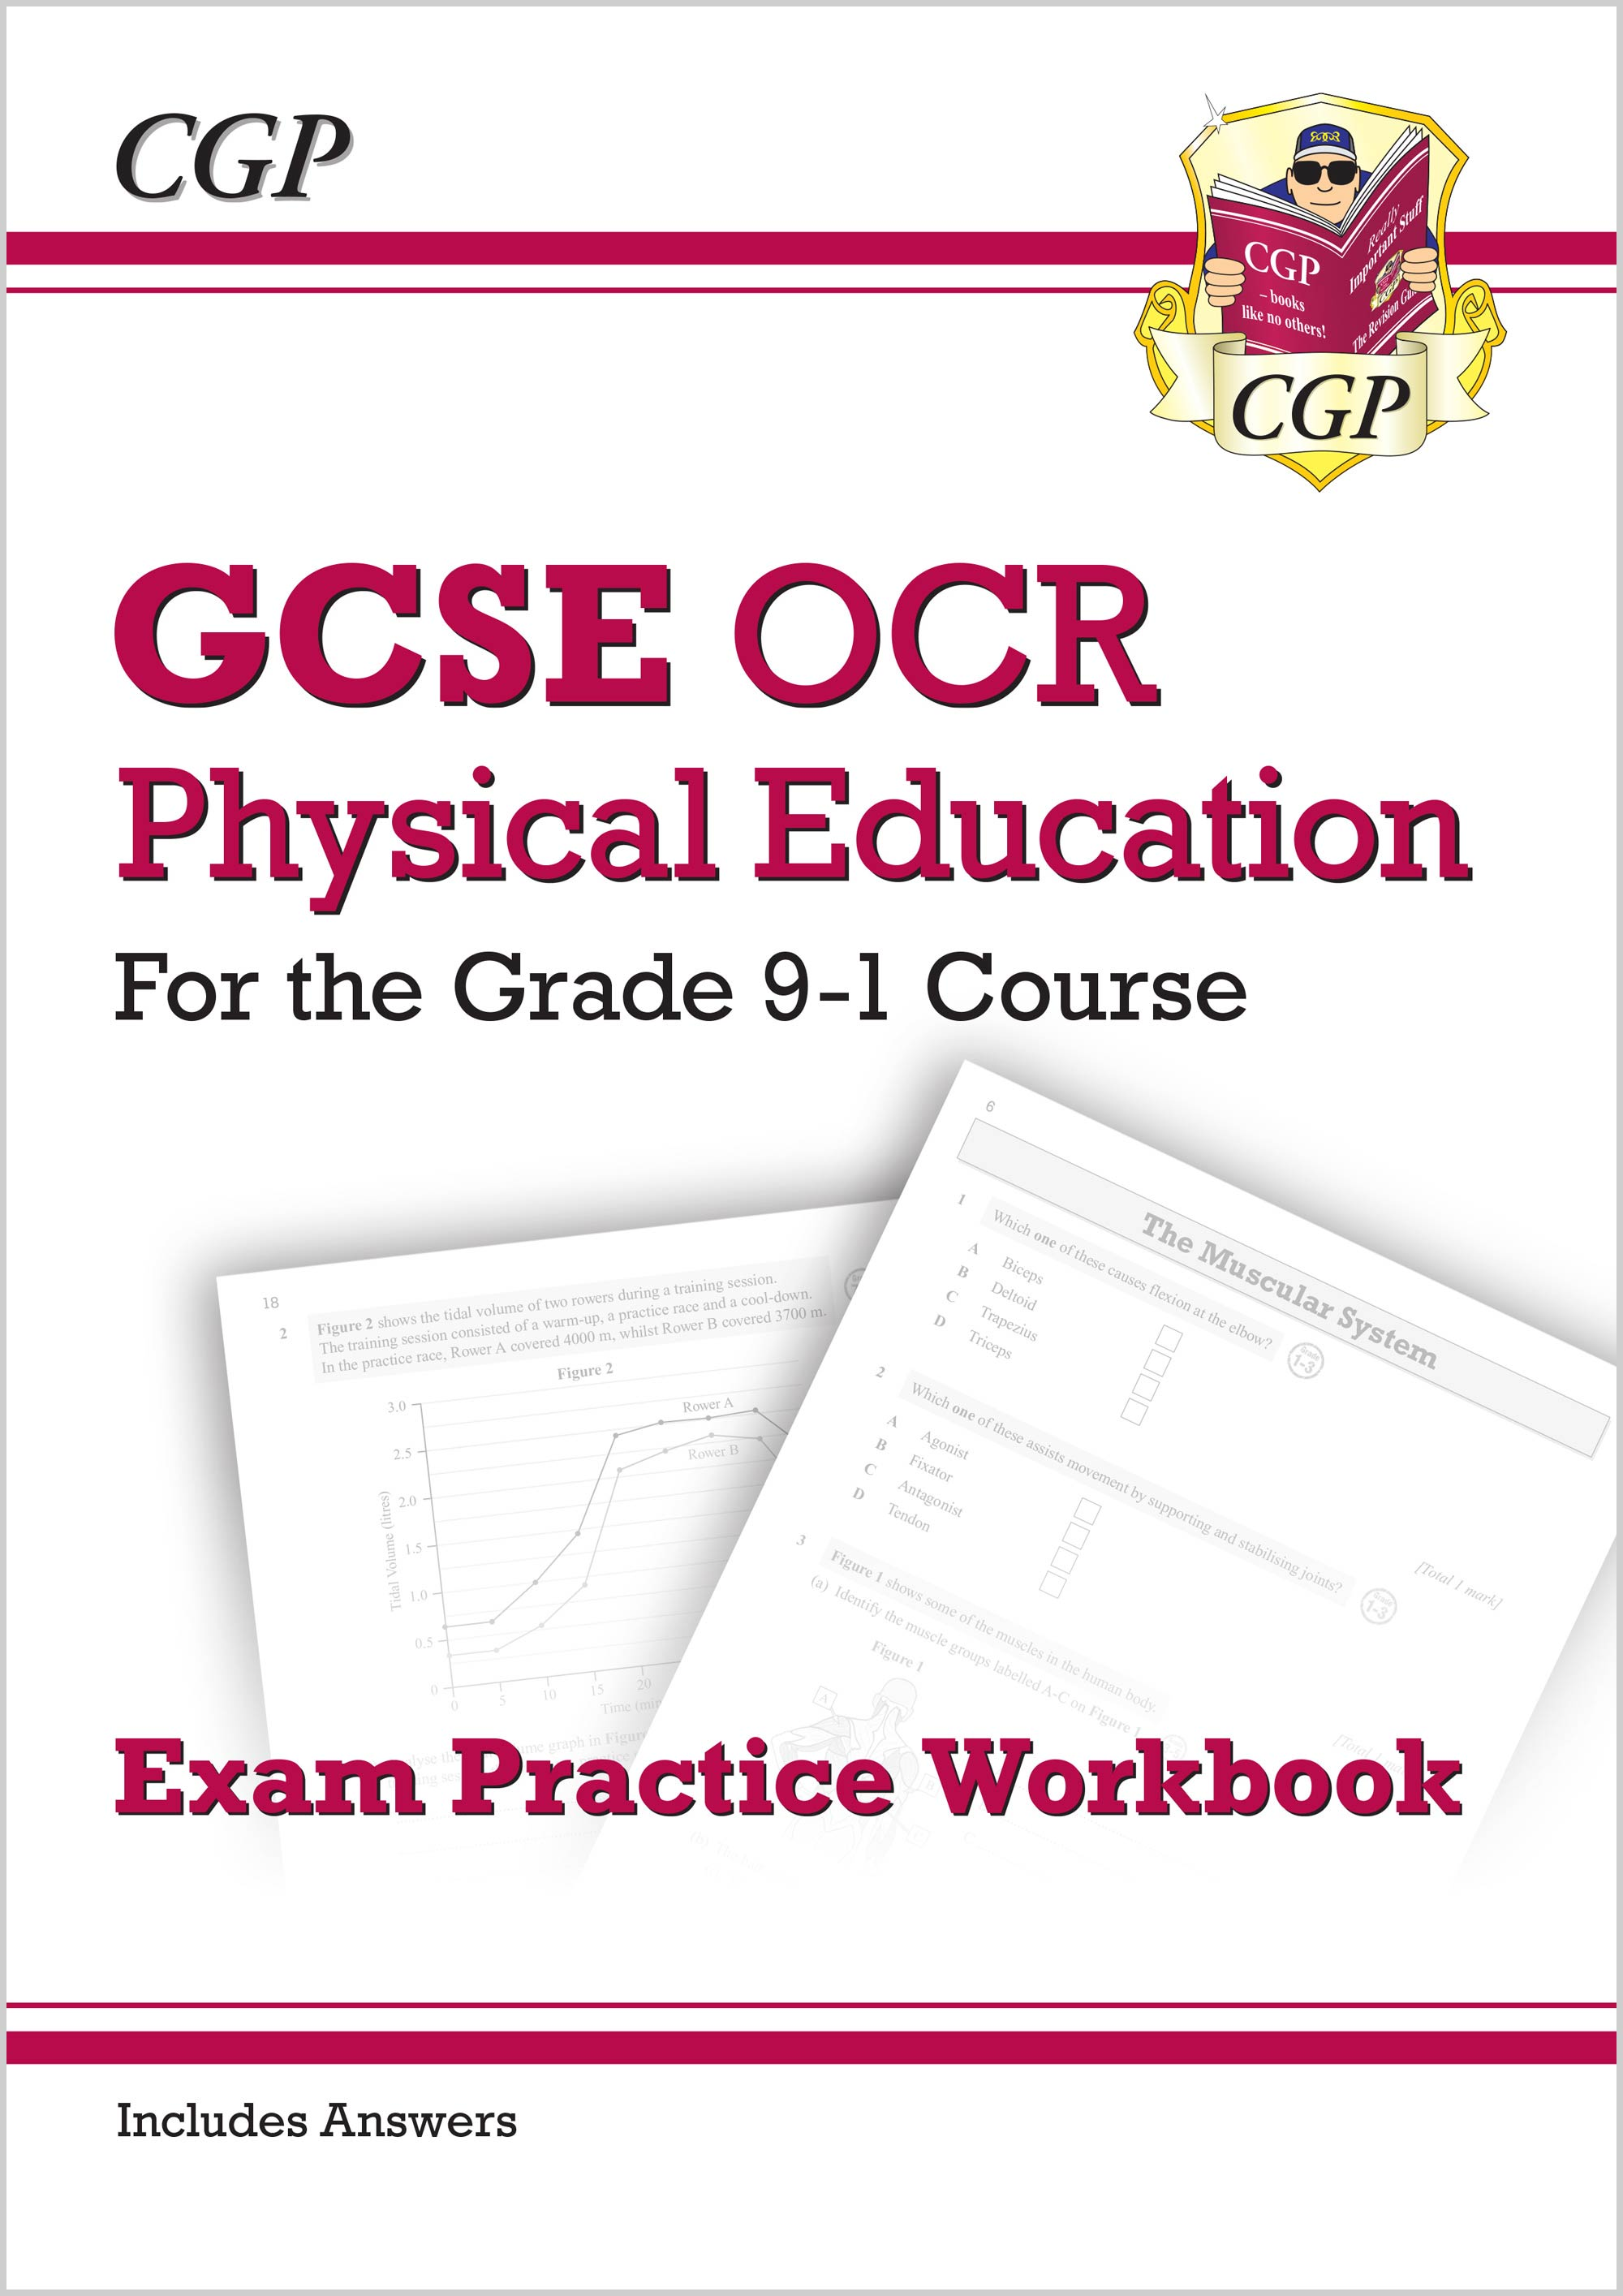 JRQ41 - New GCSE Physical Education OCR Exam Practice Workbook - for the Grade 9-1 Course (includes